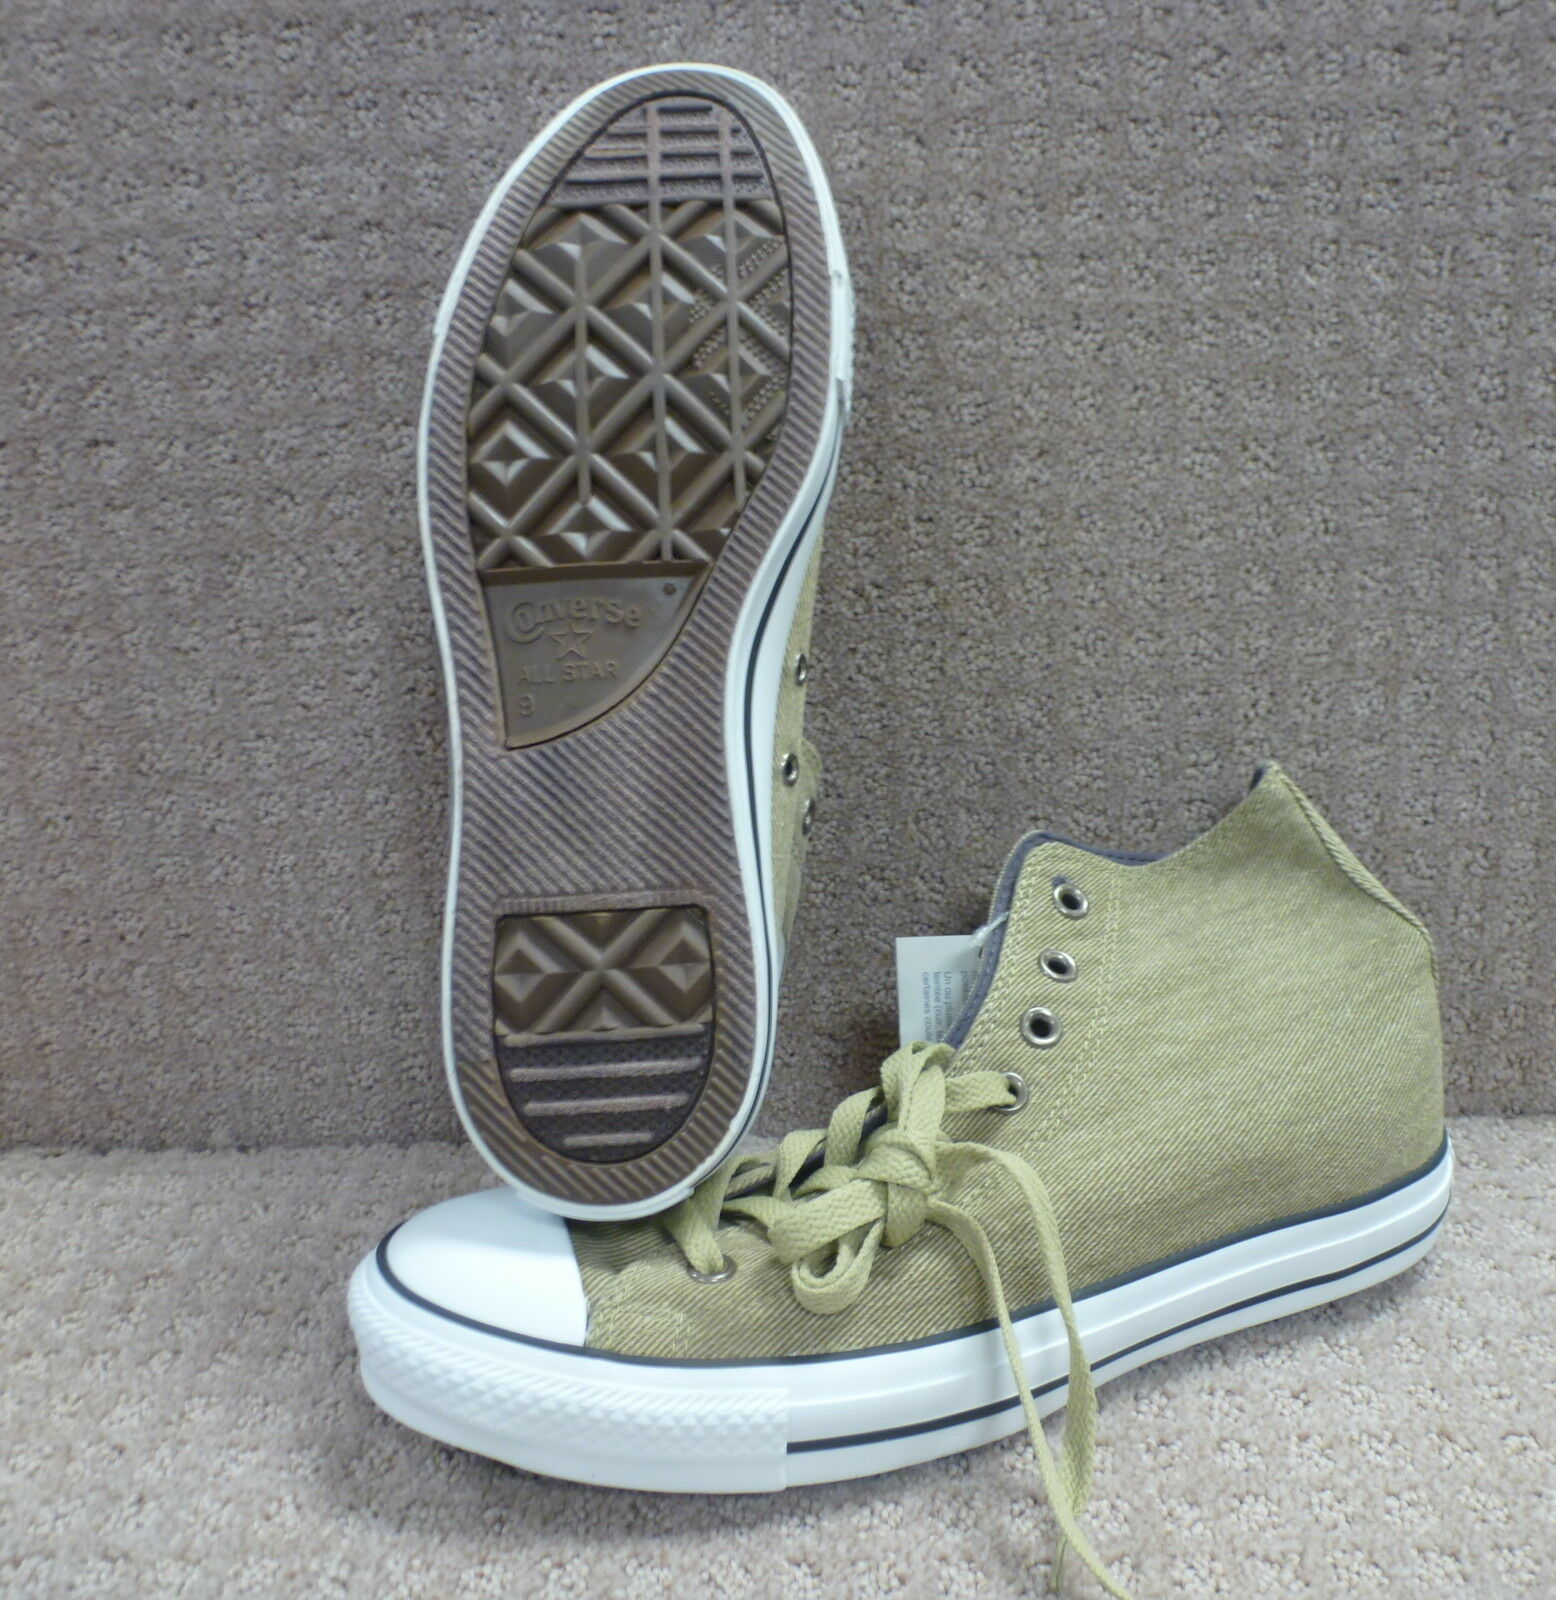 Converse Men's shoes's Ct High--Size 9, color Olive Grey